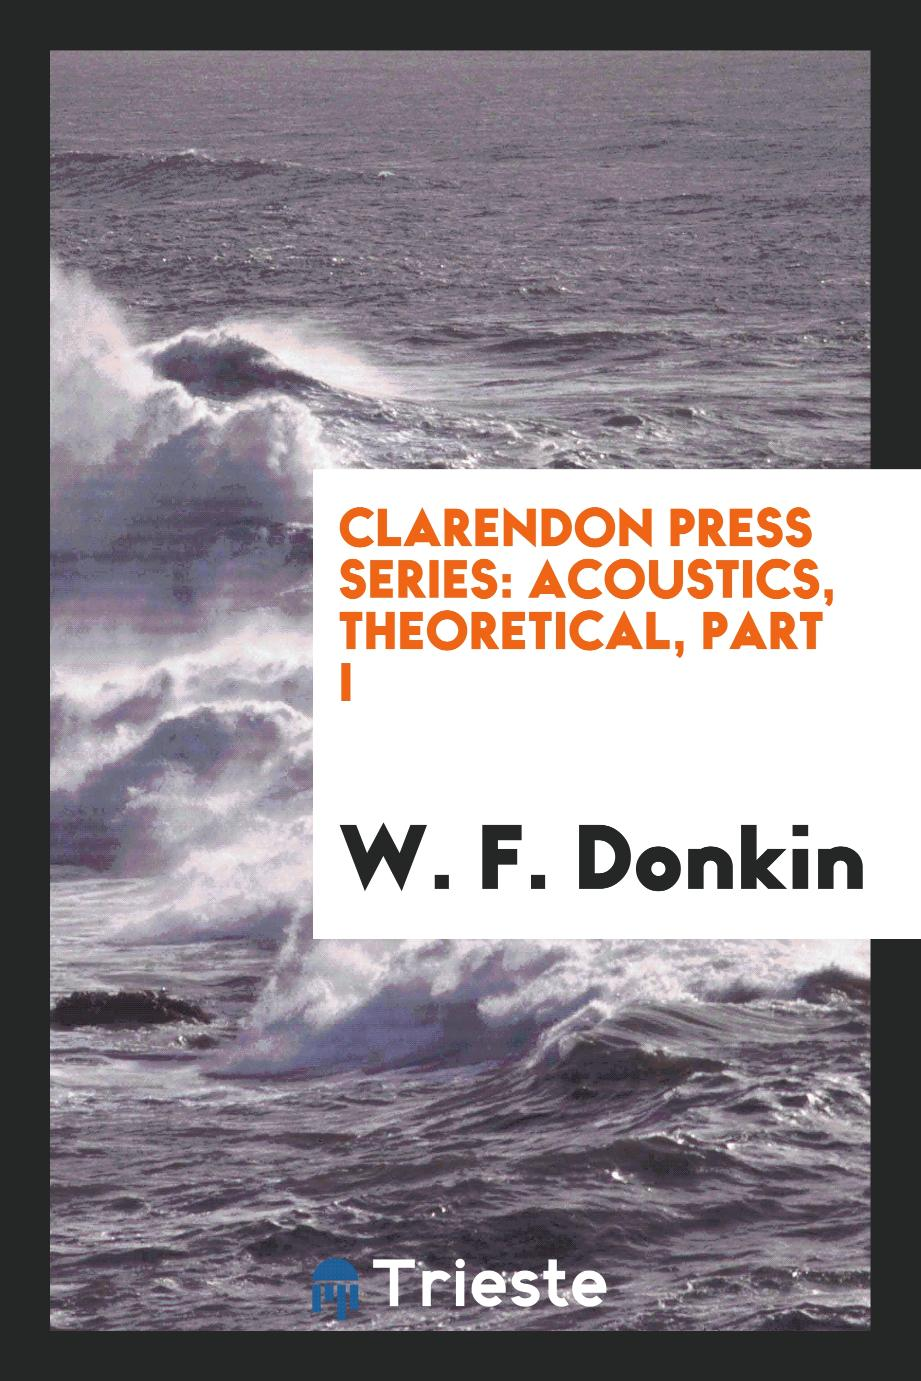 W. F. Donkin - Clarendon Press Series: Acoustics, Theoretical, Part I